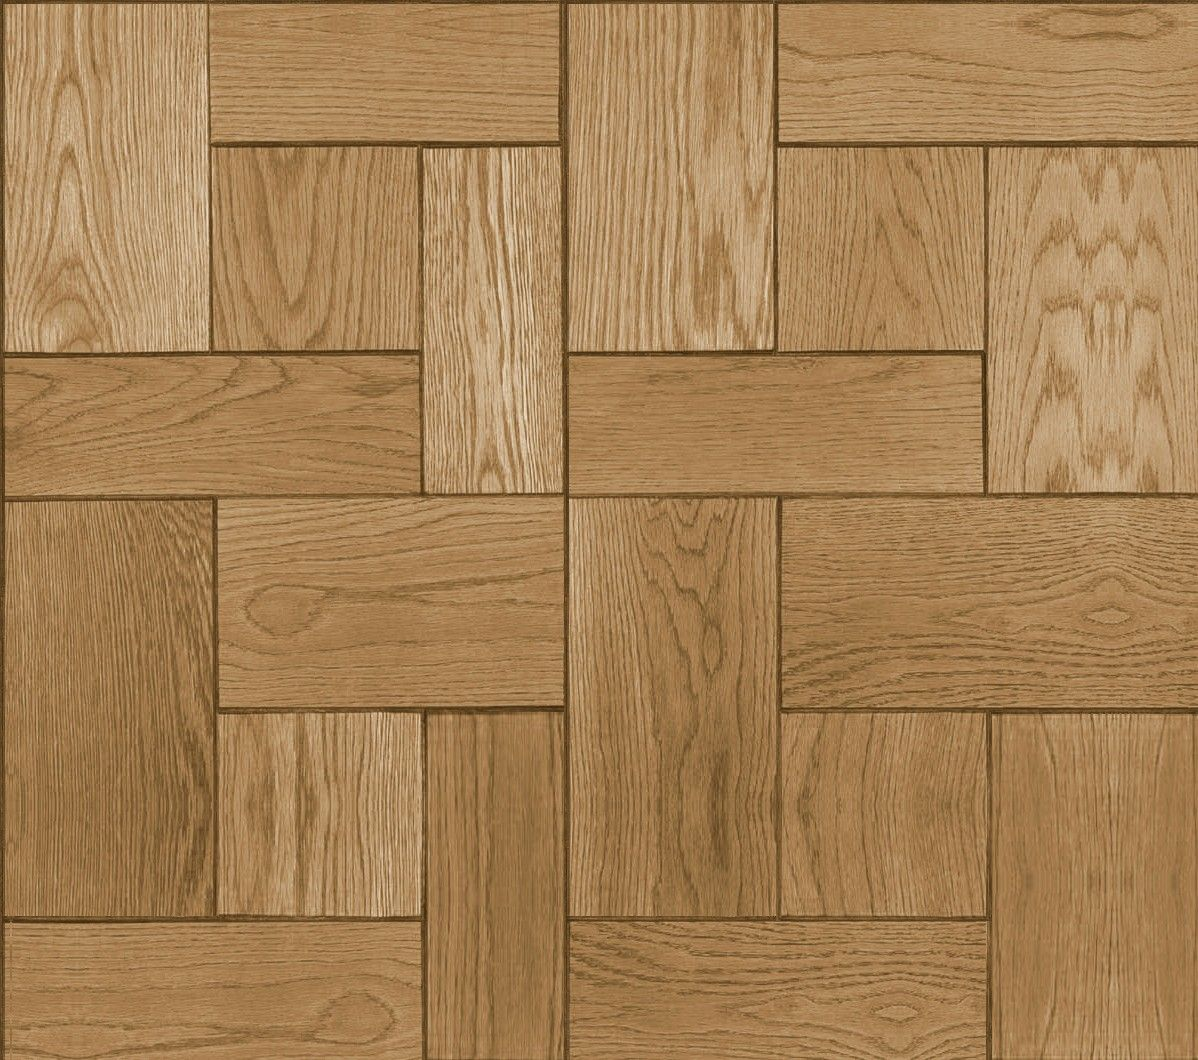 Wood floor texture sketchup warehous floor pinterest wood flooring dailygadgetfo Images